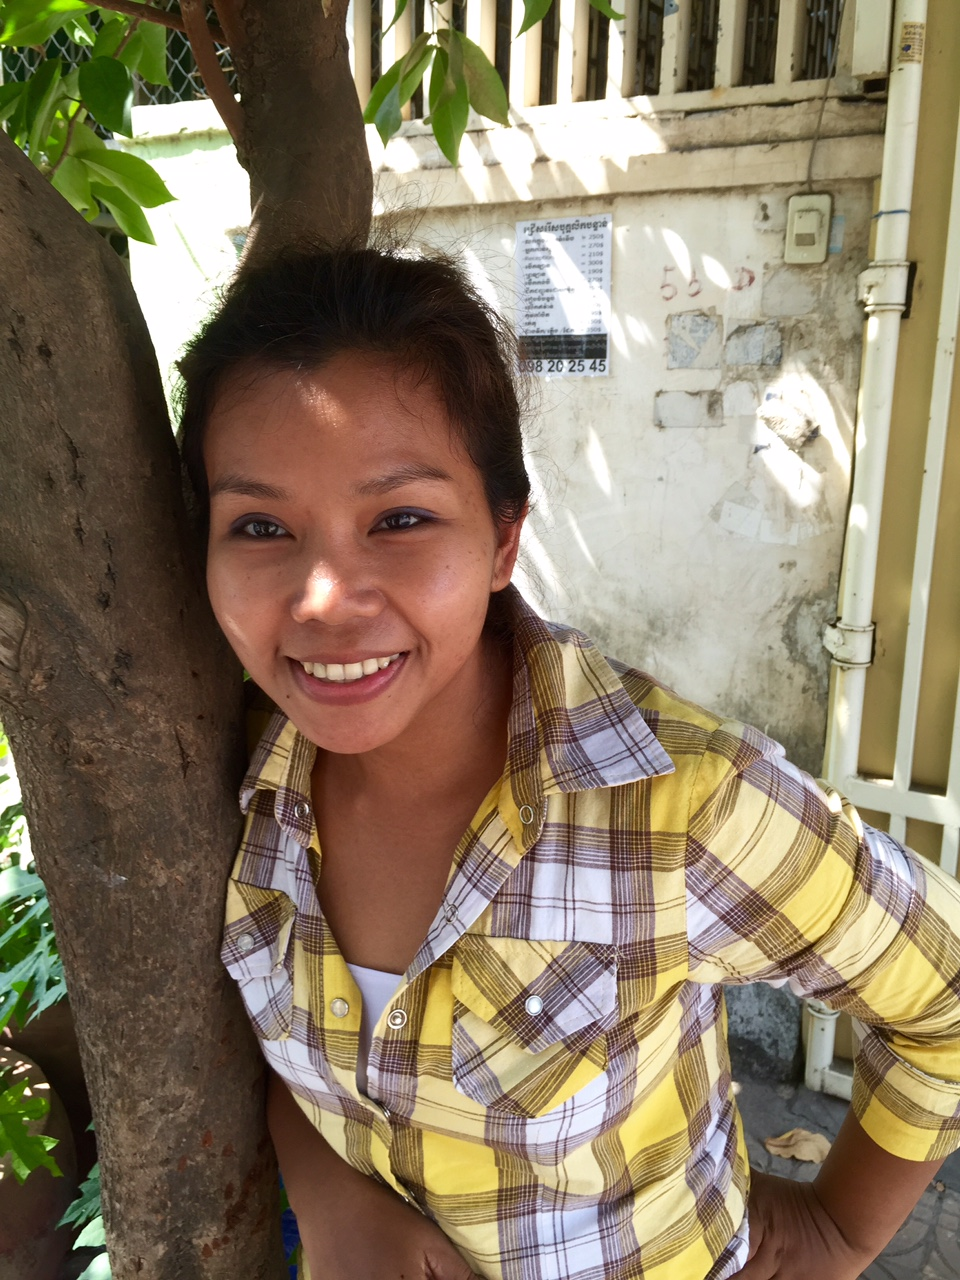 The Voice of Change – Sopheap's Story